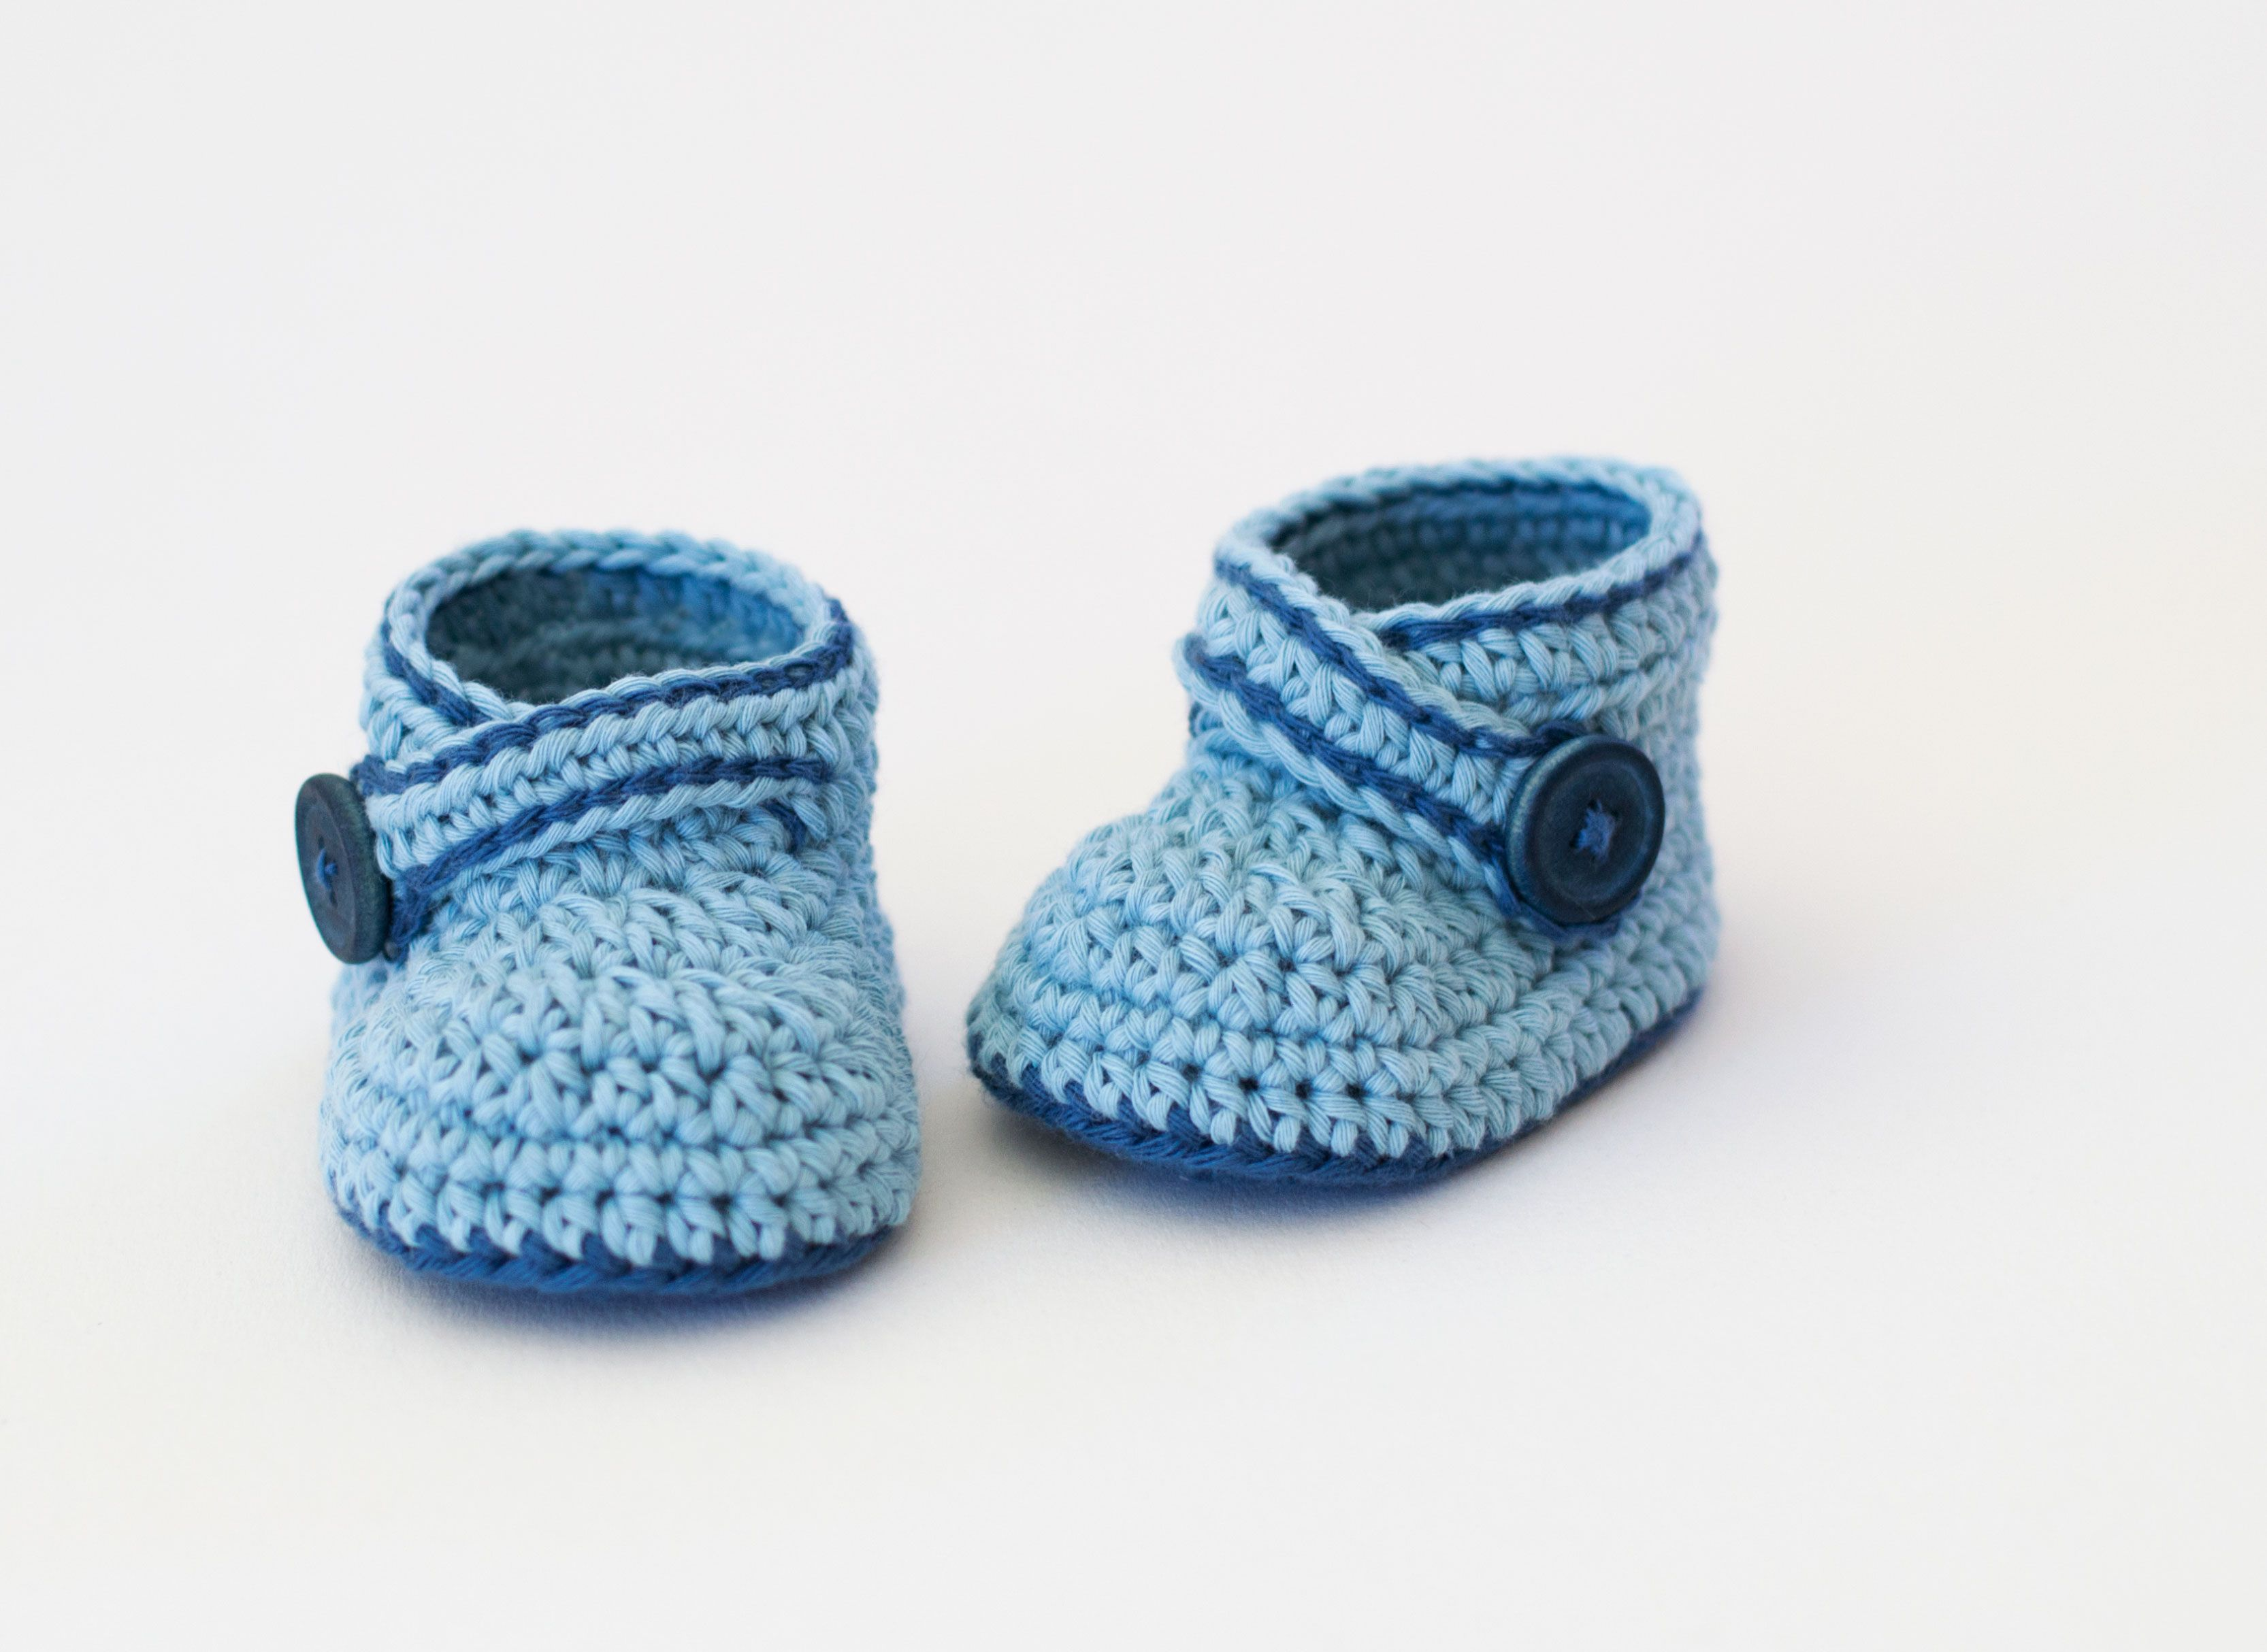 Crochet baby booties blue whale by croby patterns http crochet baby booties blue whale by croby patterns httpcrobypatterns bankloansurffo Image collections